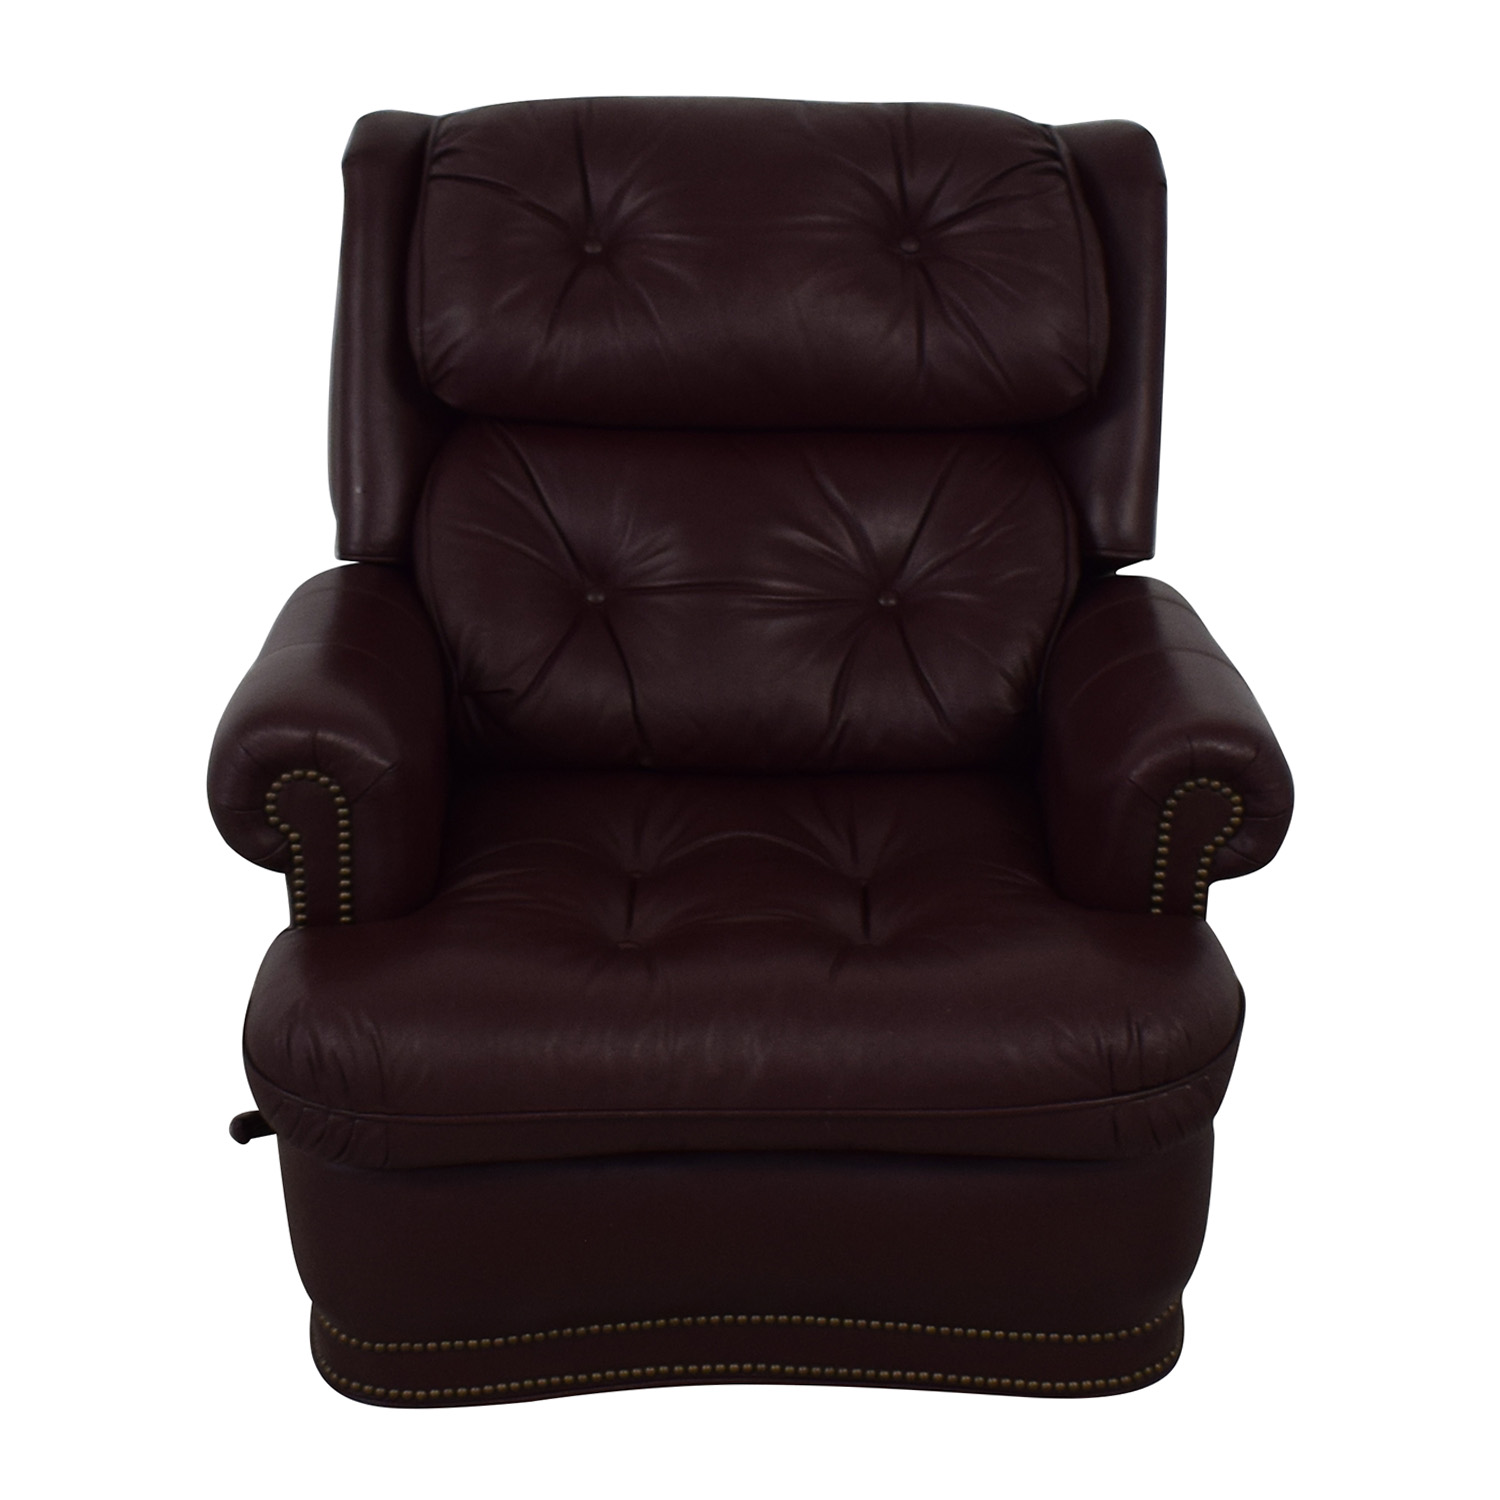 Distinctions Furniture Distinctions Furniture Leather Burgundy Recliner nyc